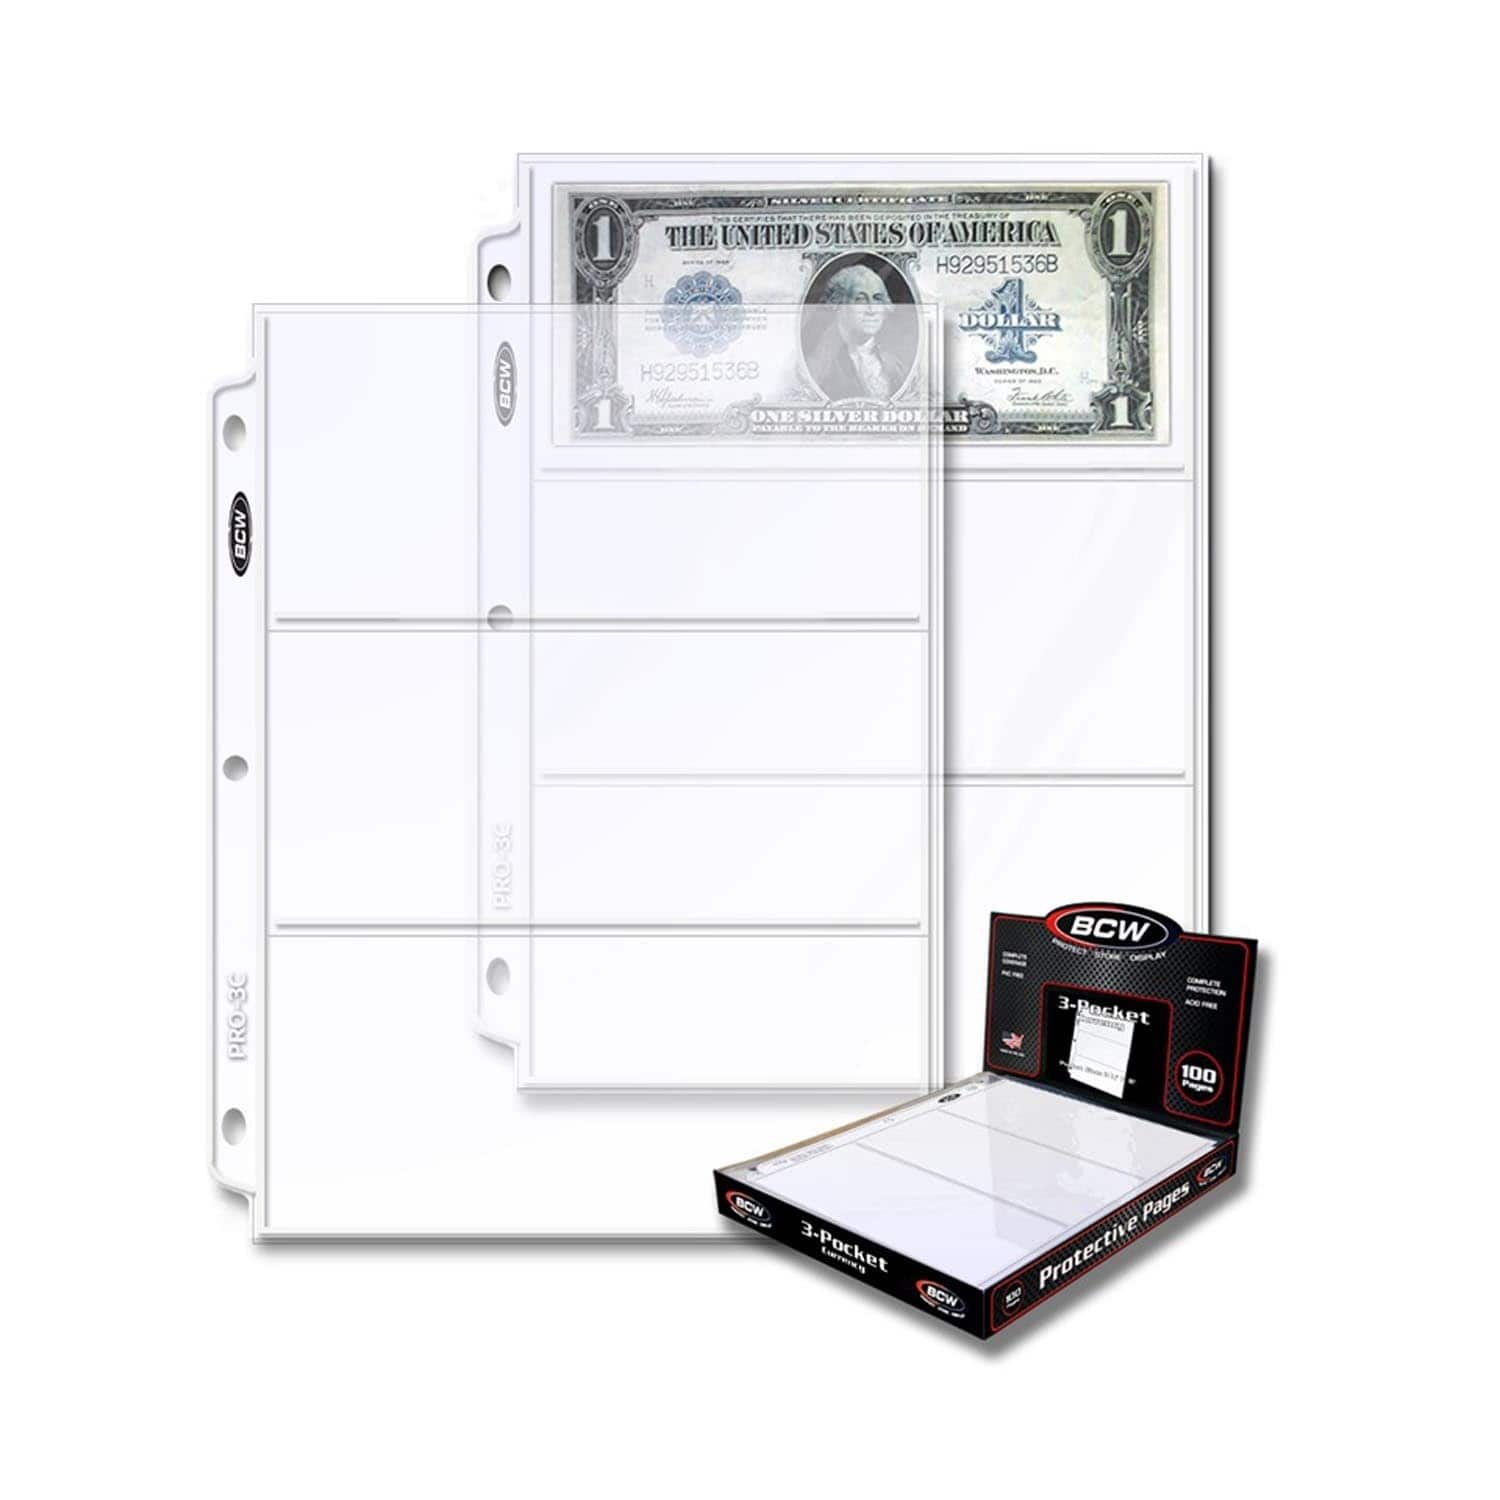 Bcw 3 Pocket Currency And Coupon Size Binder Pages 100 Count Box Walmart Com Walmart Com